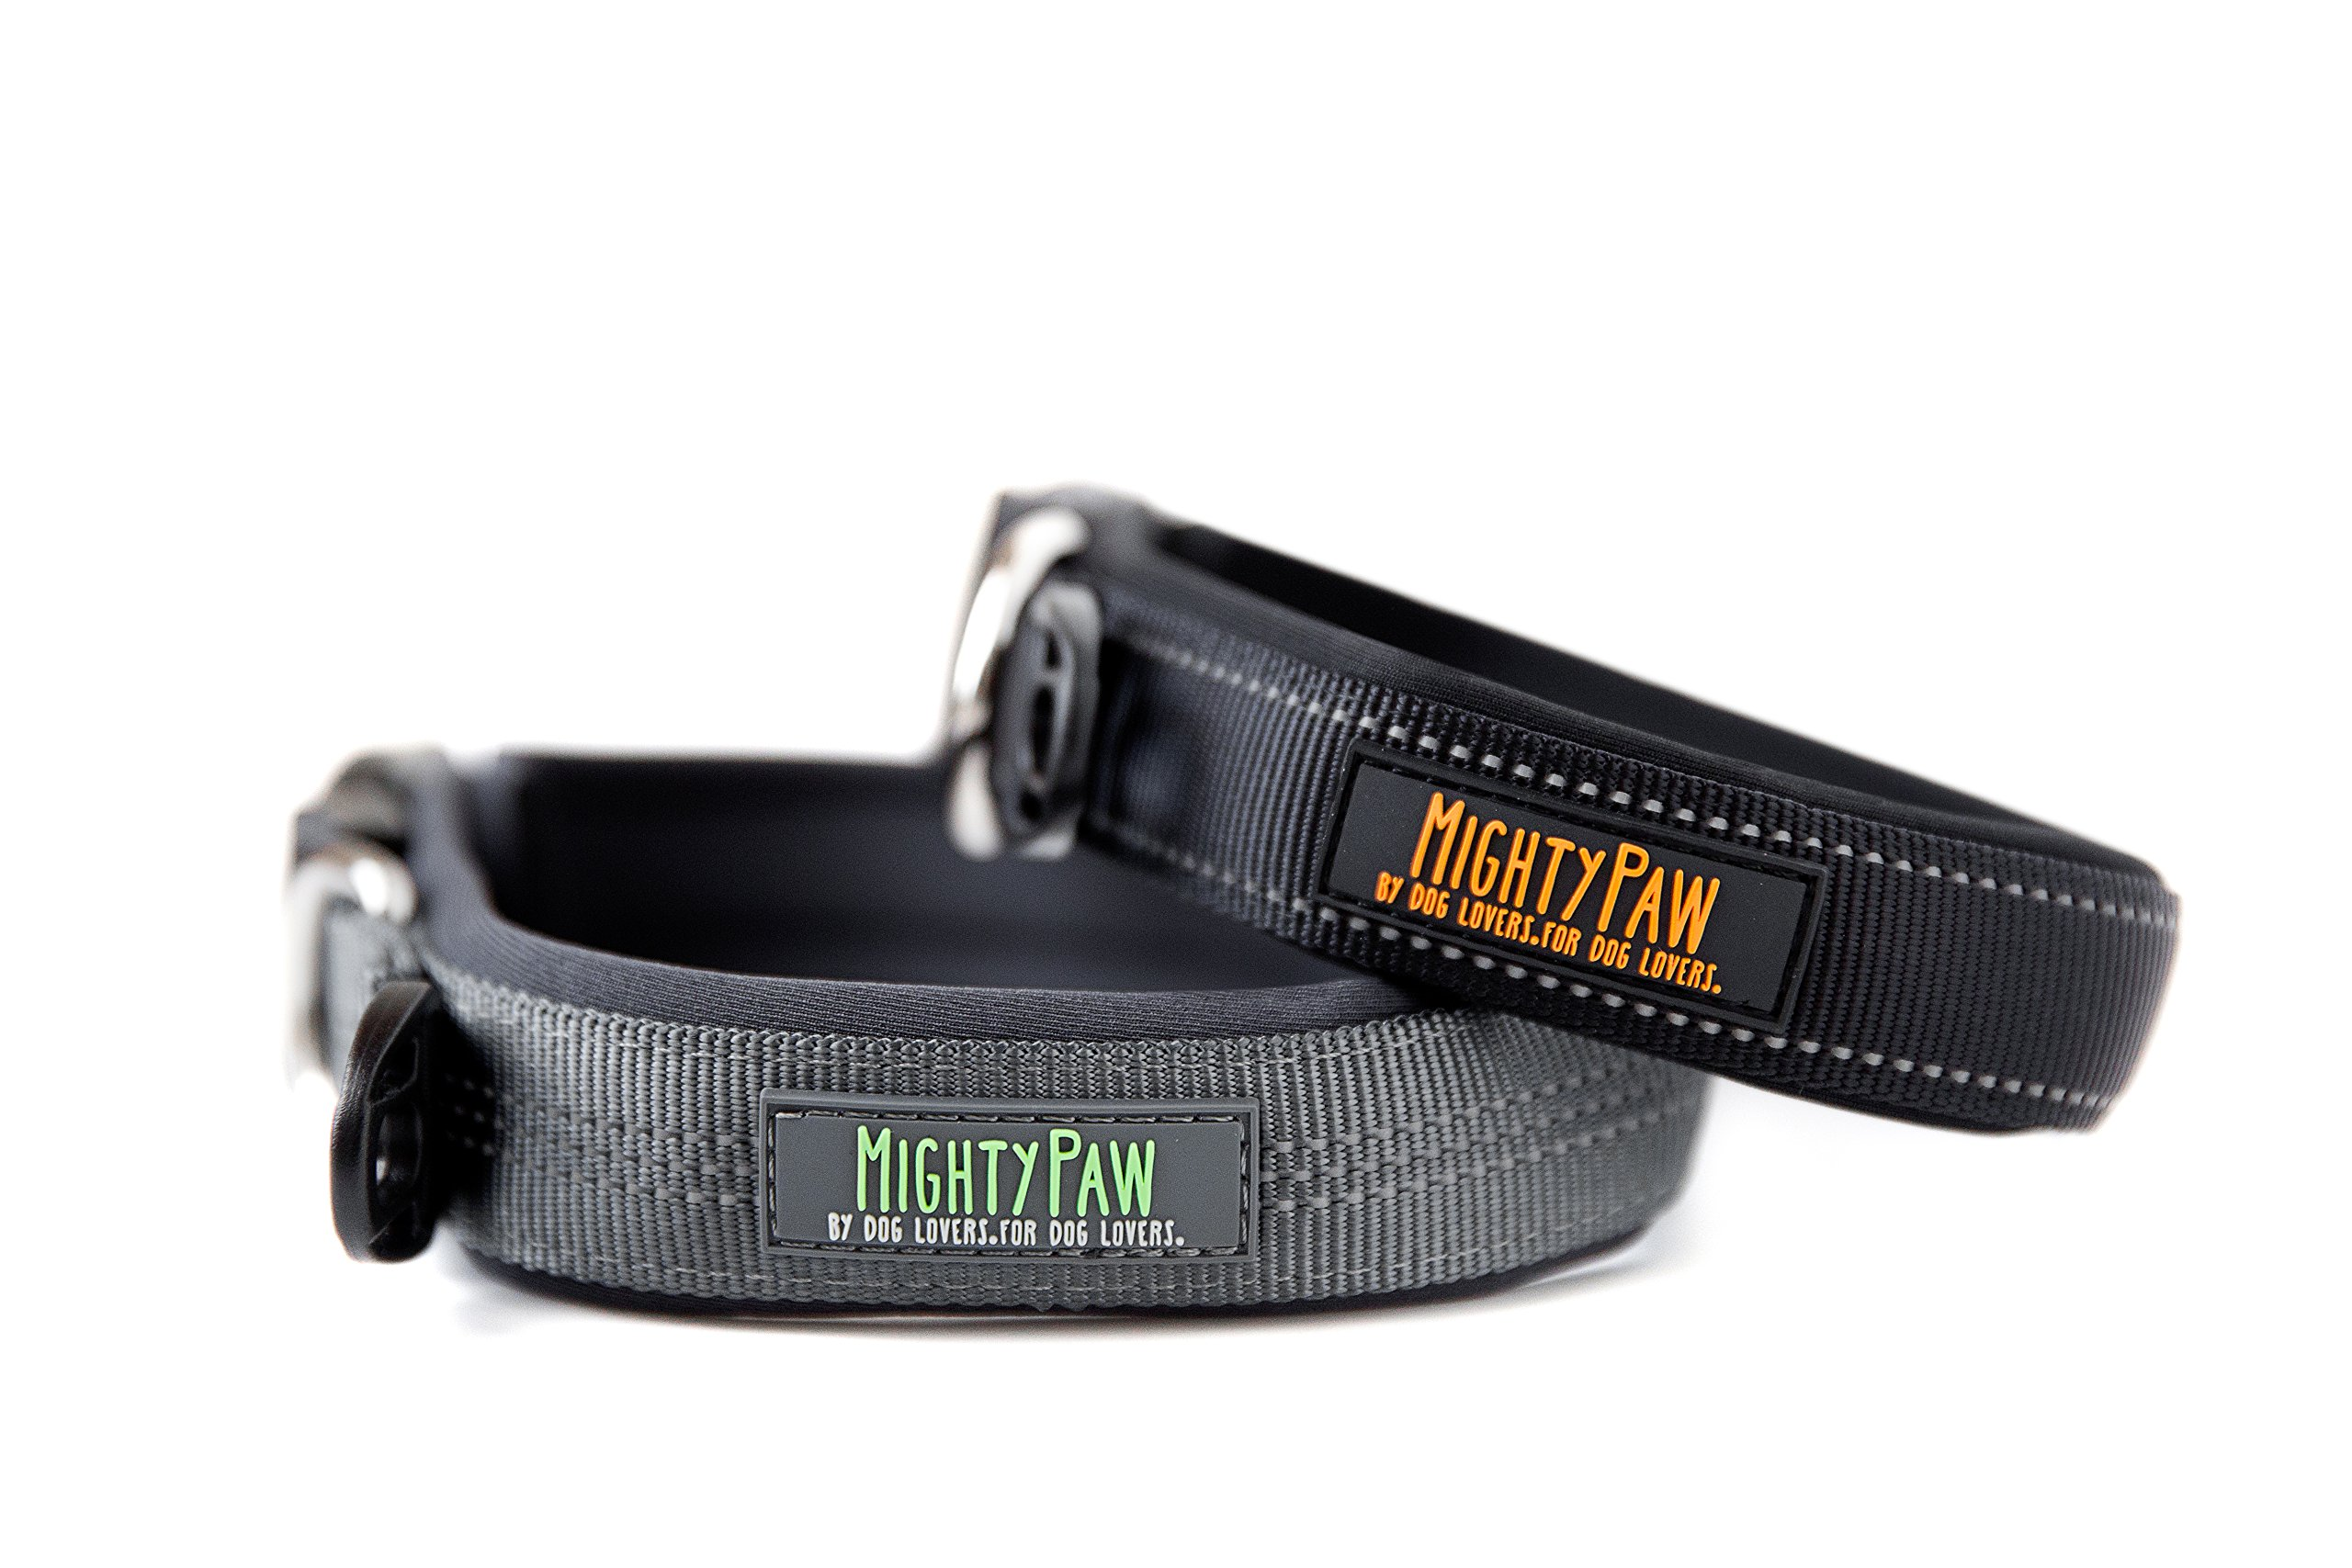 Mighty Paw Neoprene Padded Running Dog Collar, Premium Quality Sports Collar with Reflective Stitching, Extra Comfort for Active Dogs (Black- X-Large 22-27'')